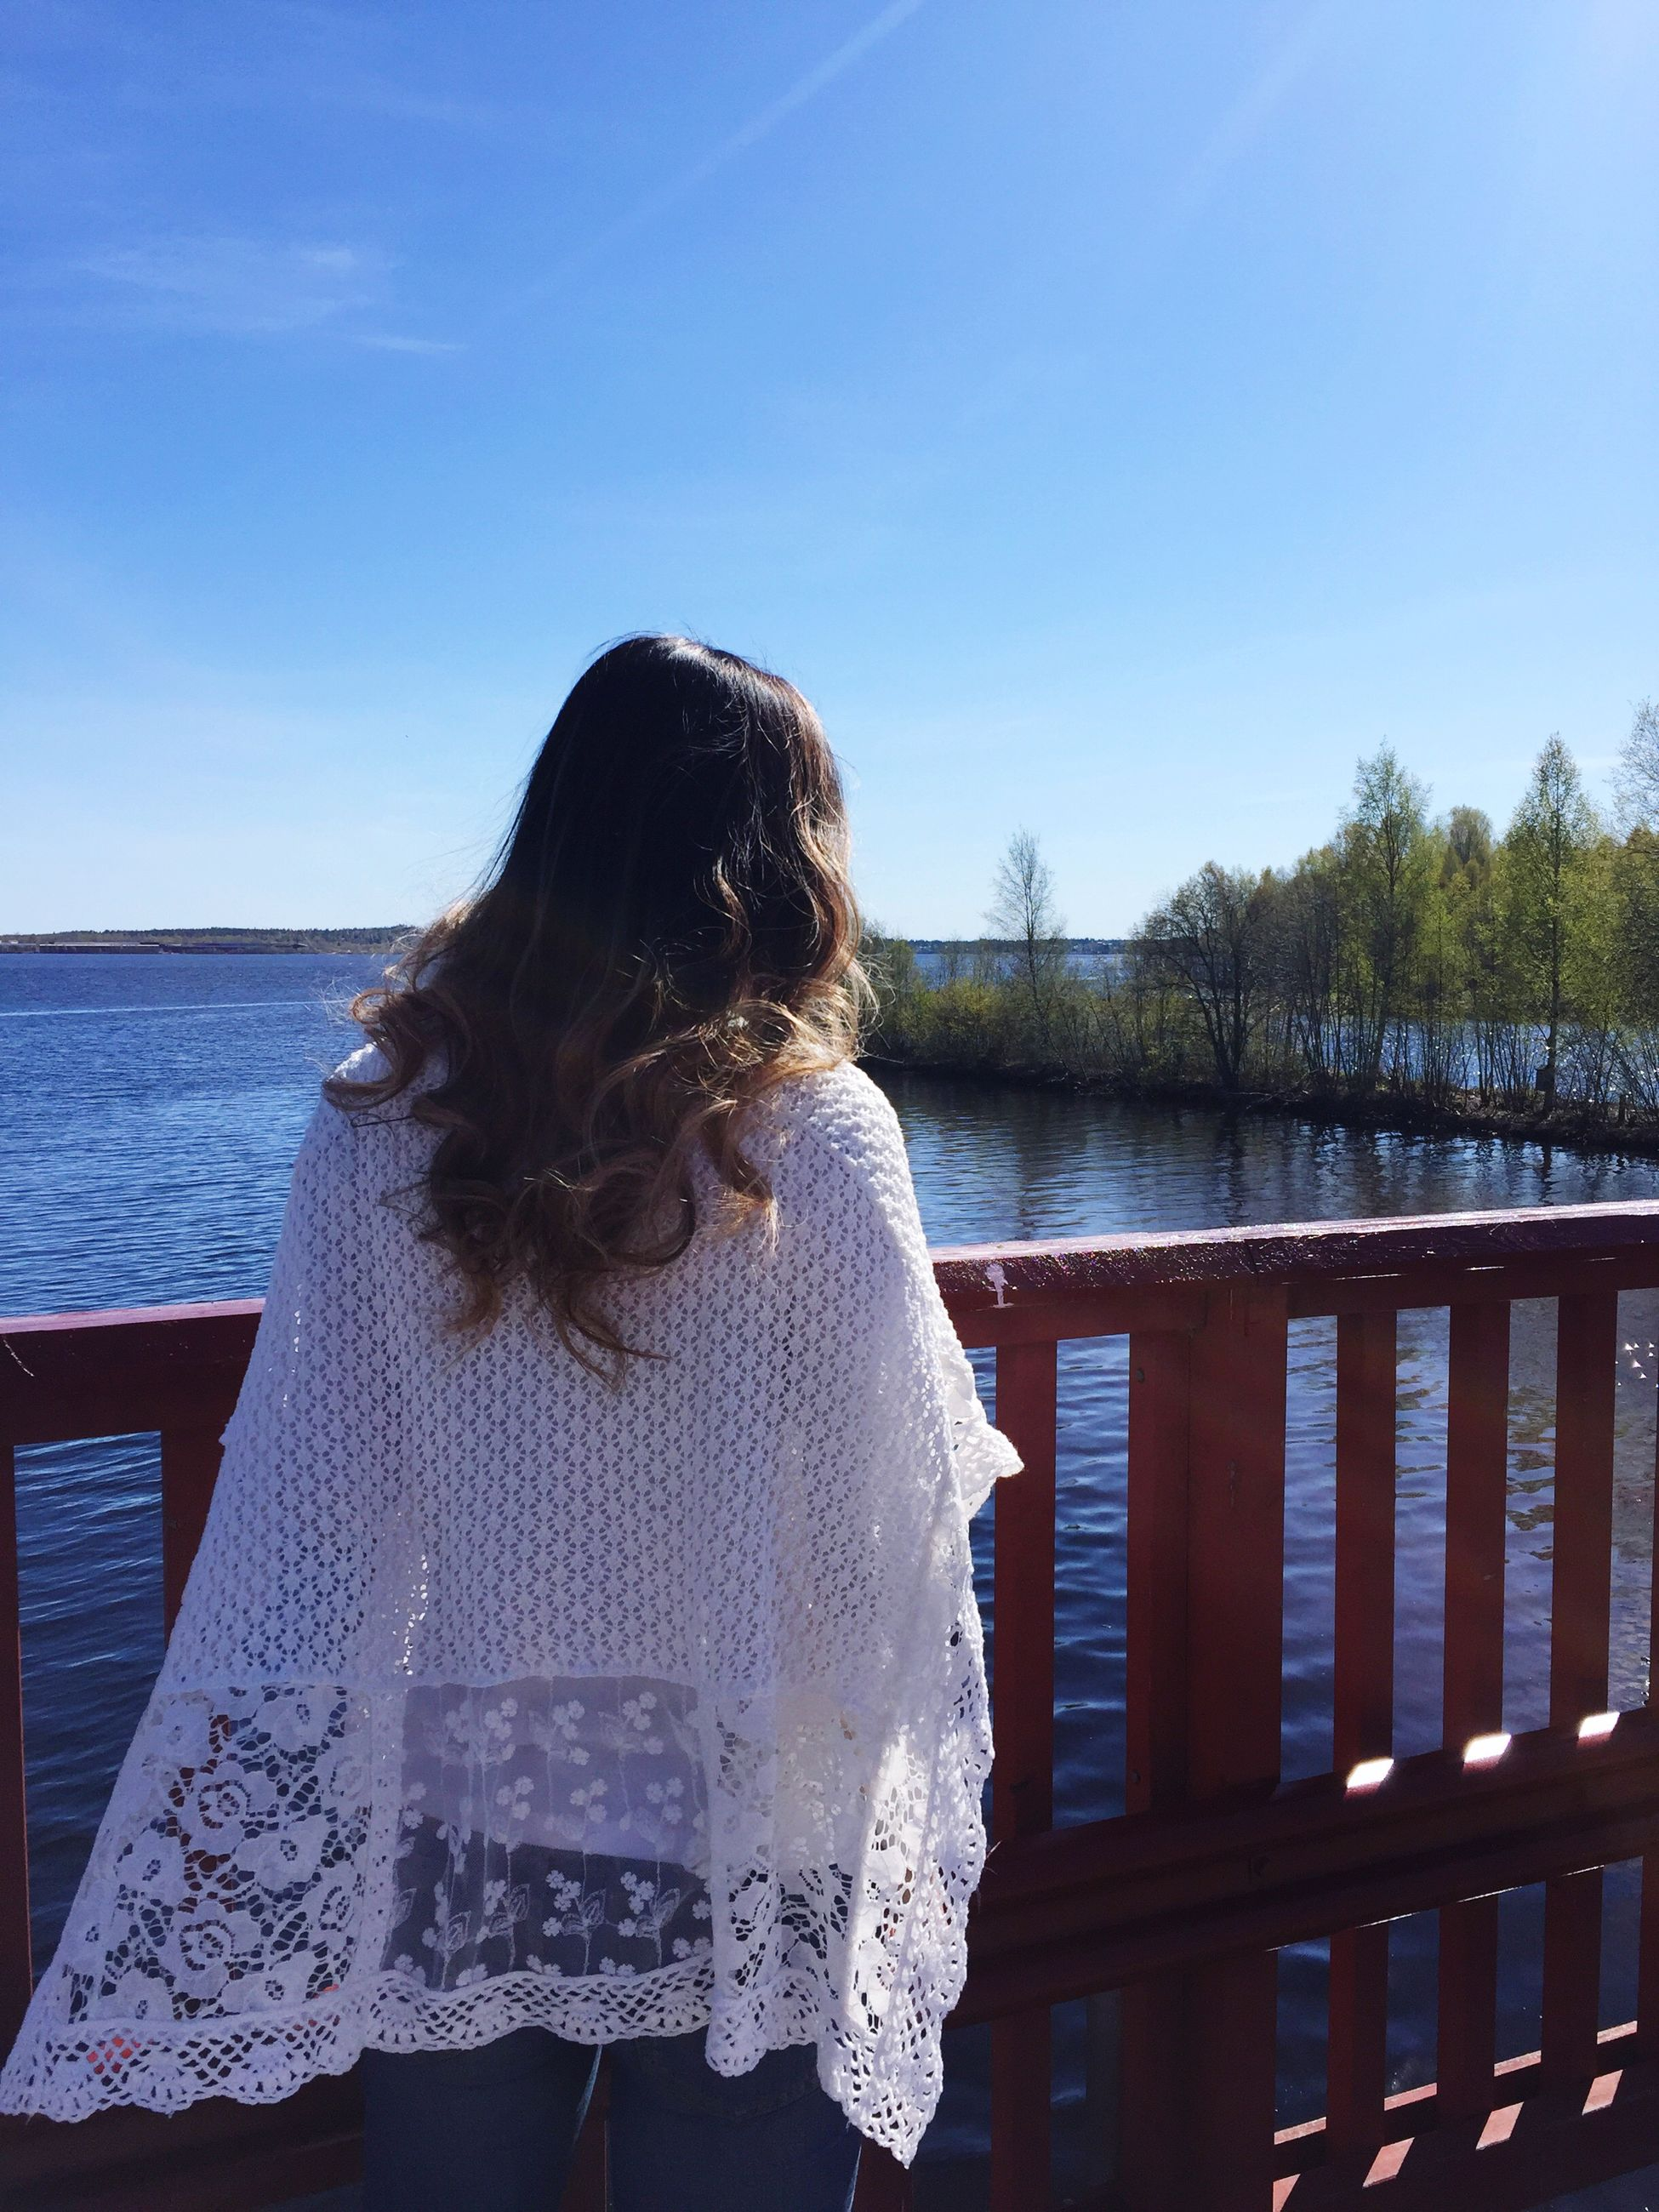 water, sea, rear view, leisure activity, lifestyles, railing, blue, sky, sunlight, person, clear sky, horizon over water, day, nature, standing, headshot, long hair, waist up